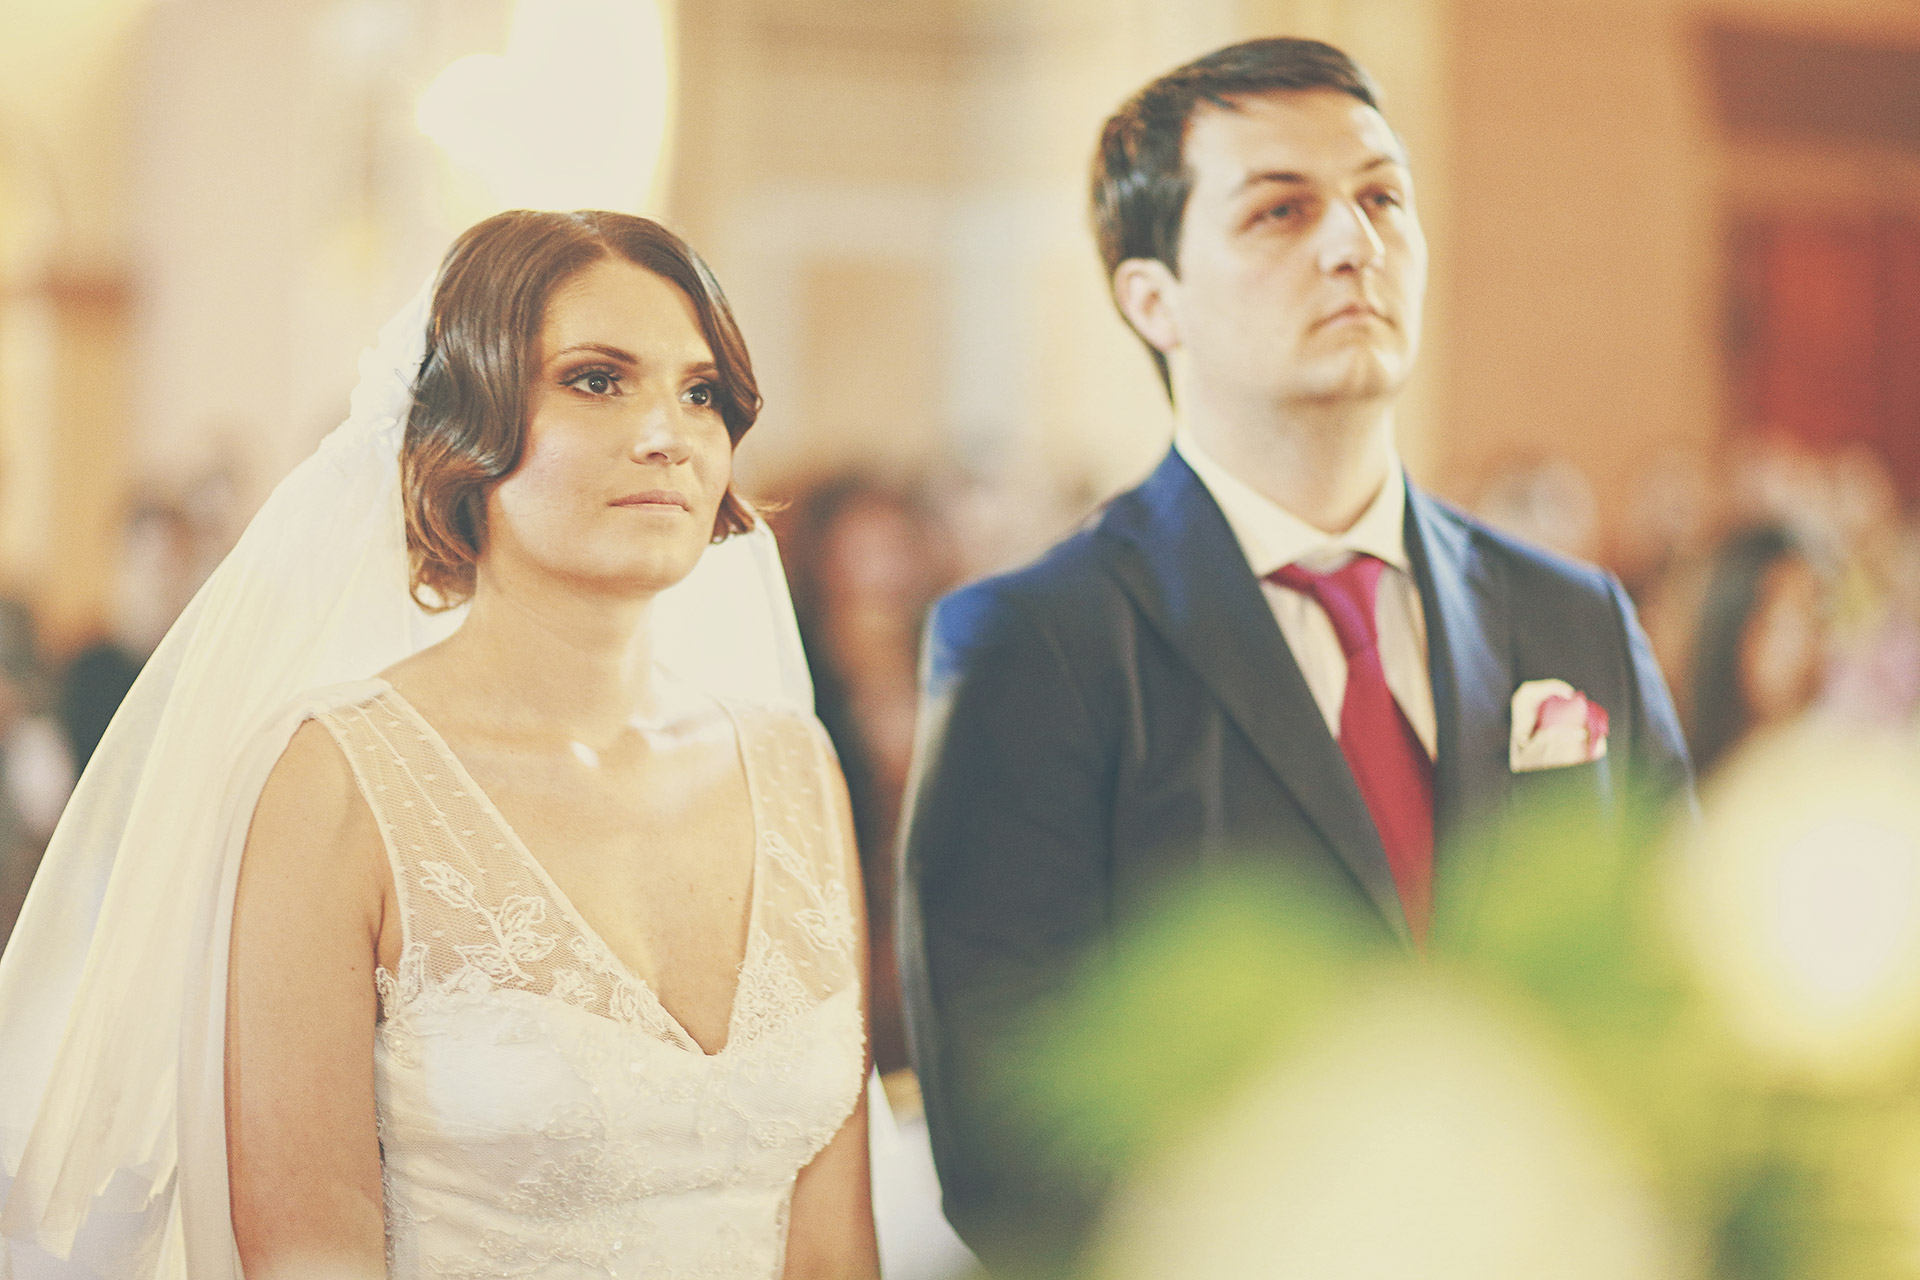 Martina & Josip wedding story